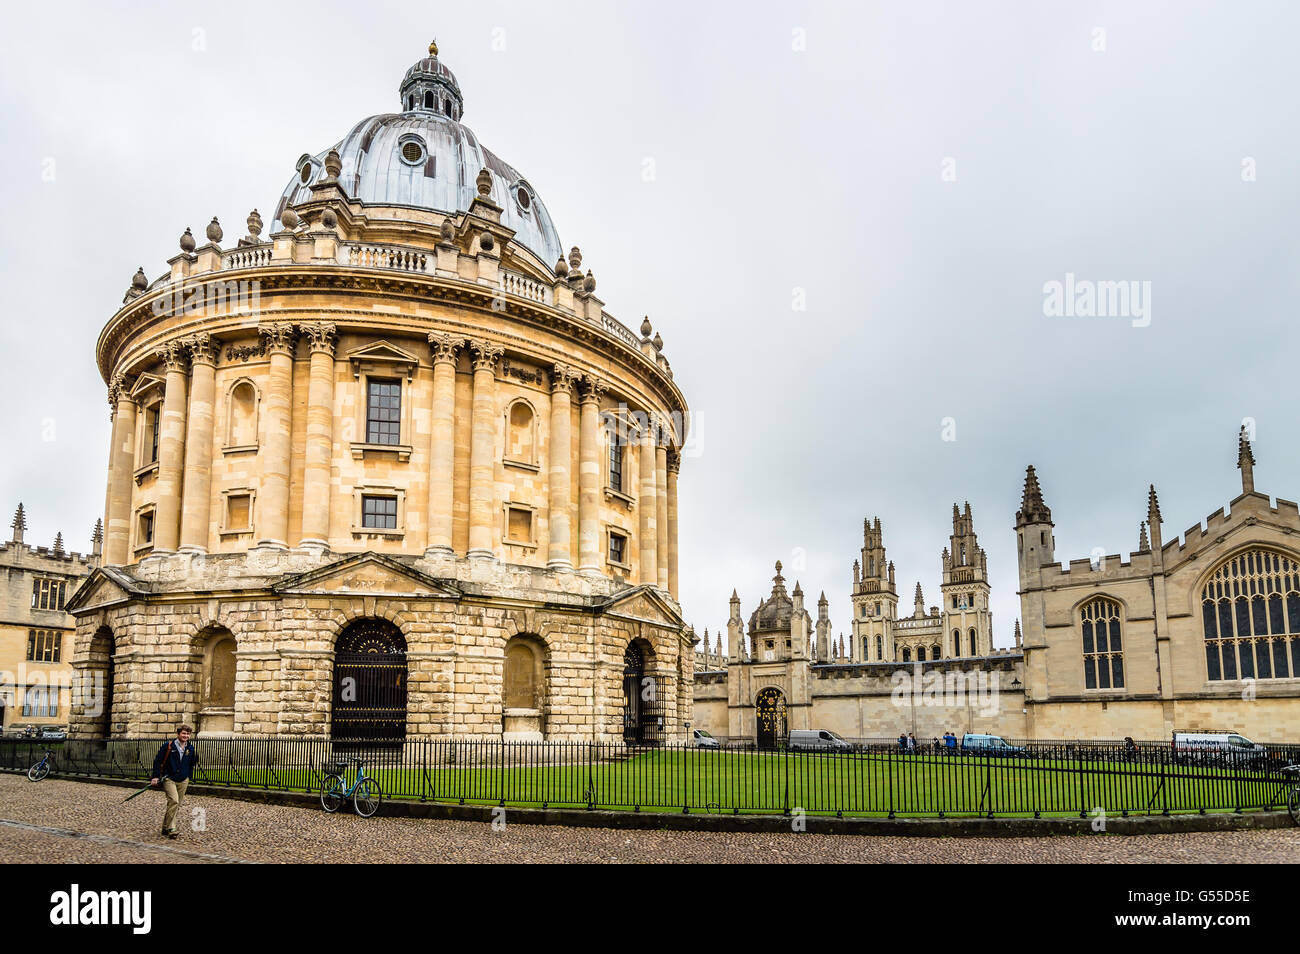 Oxford, UK - August 12, 2015: Low angle view of Radcliffe Camera in Oxford a cloudy day - Stock Image